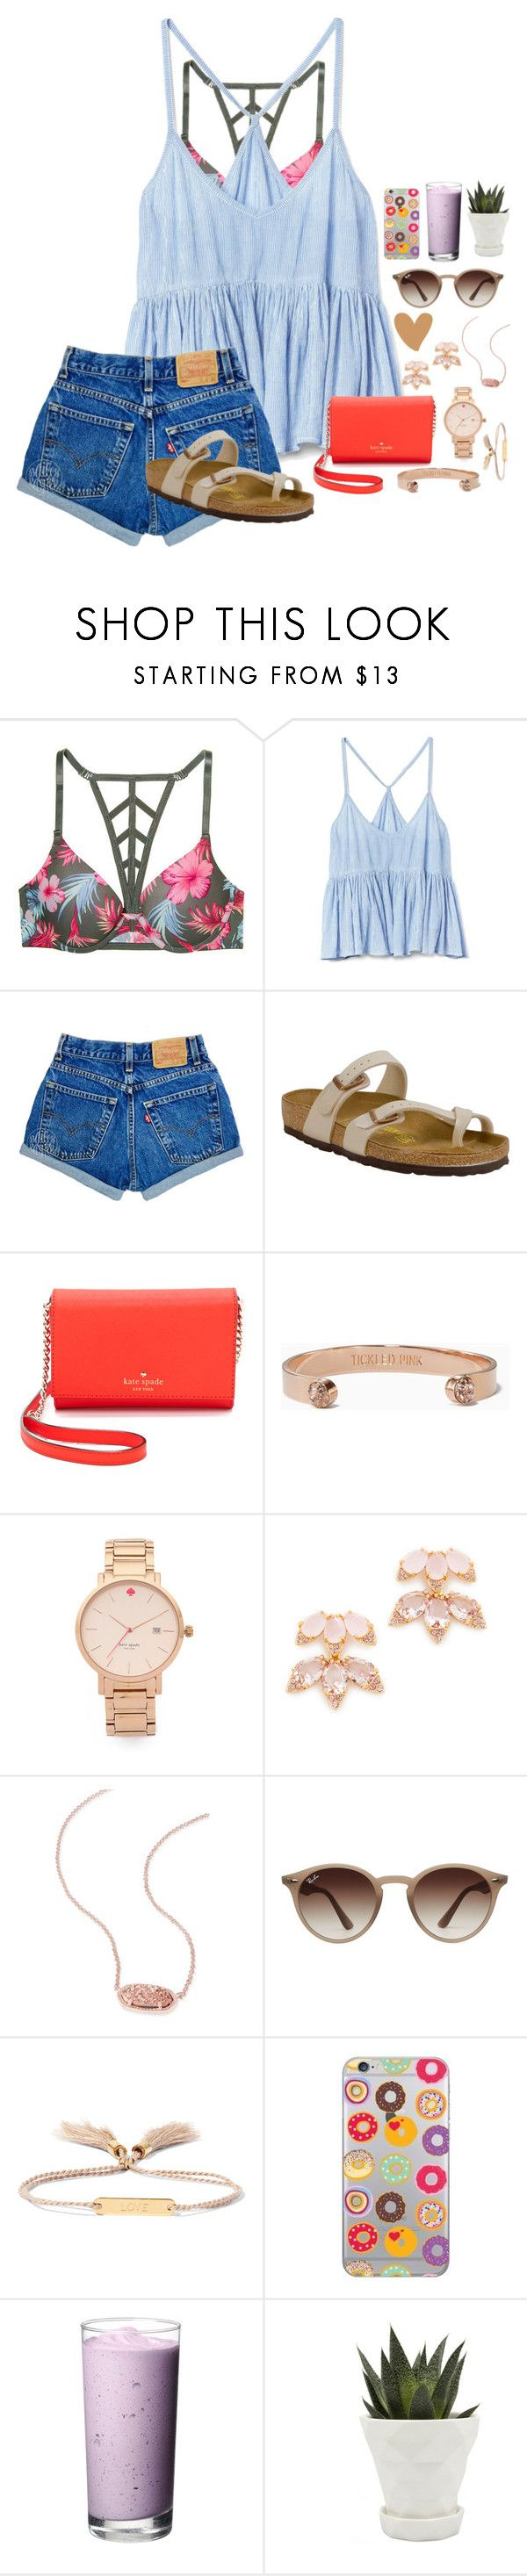 """~facetiming moo moo❤️~"" by taybug2147 ❤ liked on Polyvore featuring Victoria's Secret, Gap, Birkenstock, Kate Spade, Kendra Scott, Ray-Ban, Chloé and Chive"